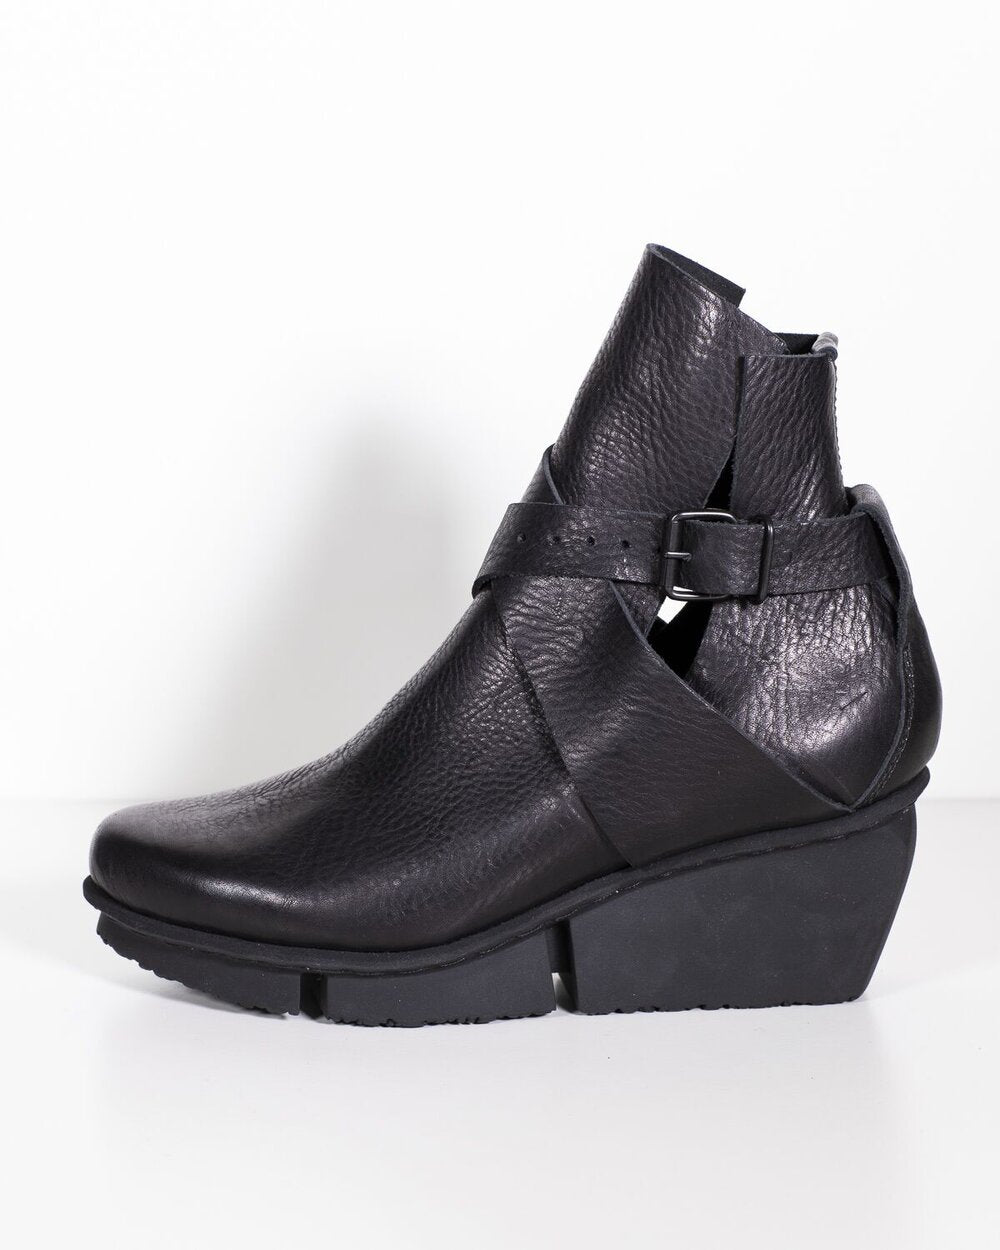 Trippen Just Black Waw Leather Black St Sole